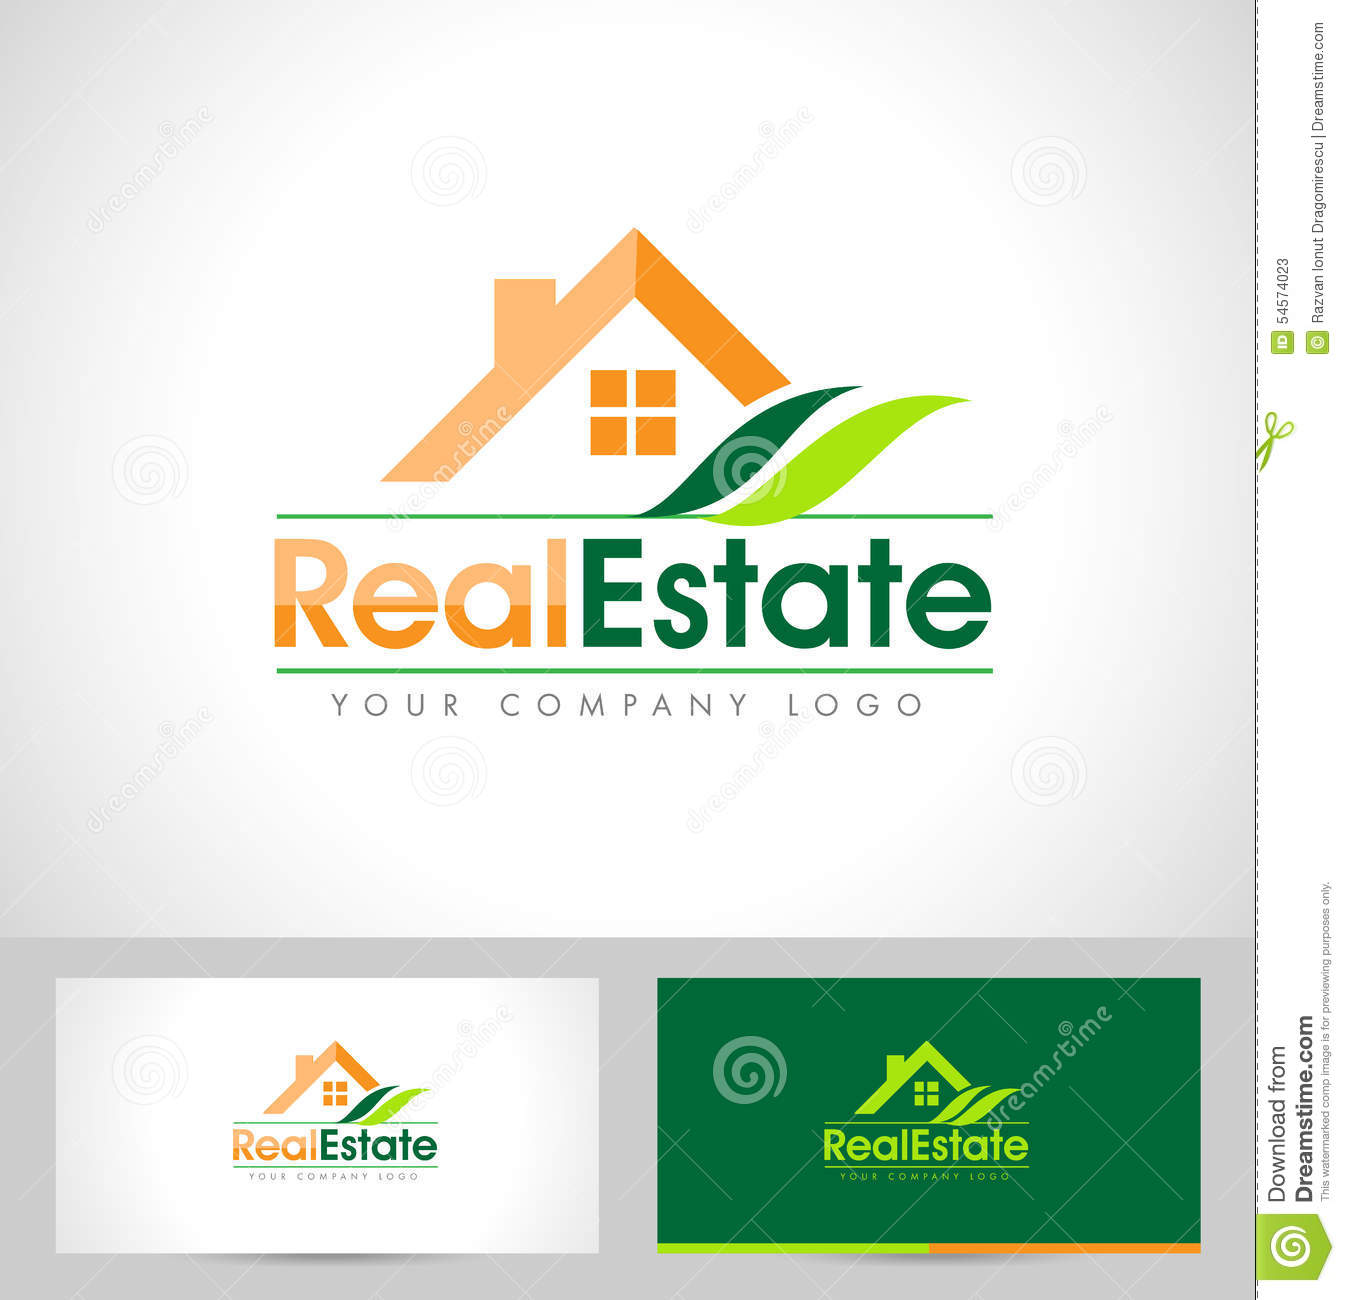 Real Estate Logo Design Stock Vector - Image: 54574023